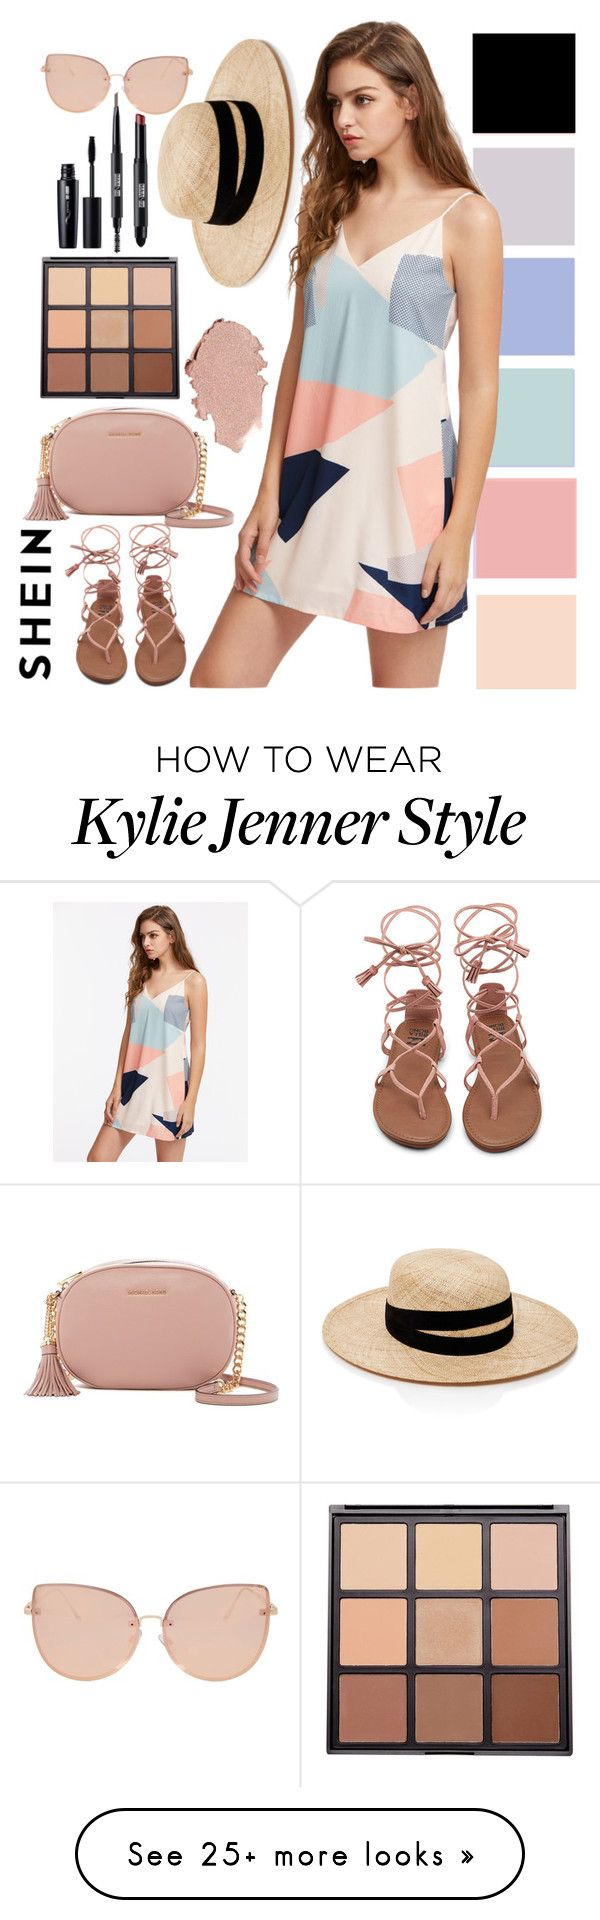 """""""SheIn Chic"""" by szeying00 on Polyvore featuring MICHAEL Michael Kors, Topshop, Morphe, Janessa Leone, chic, stylish and shein"""